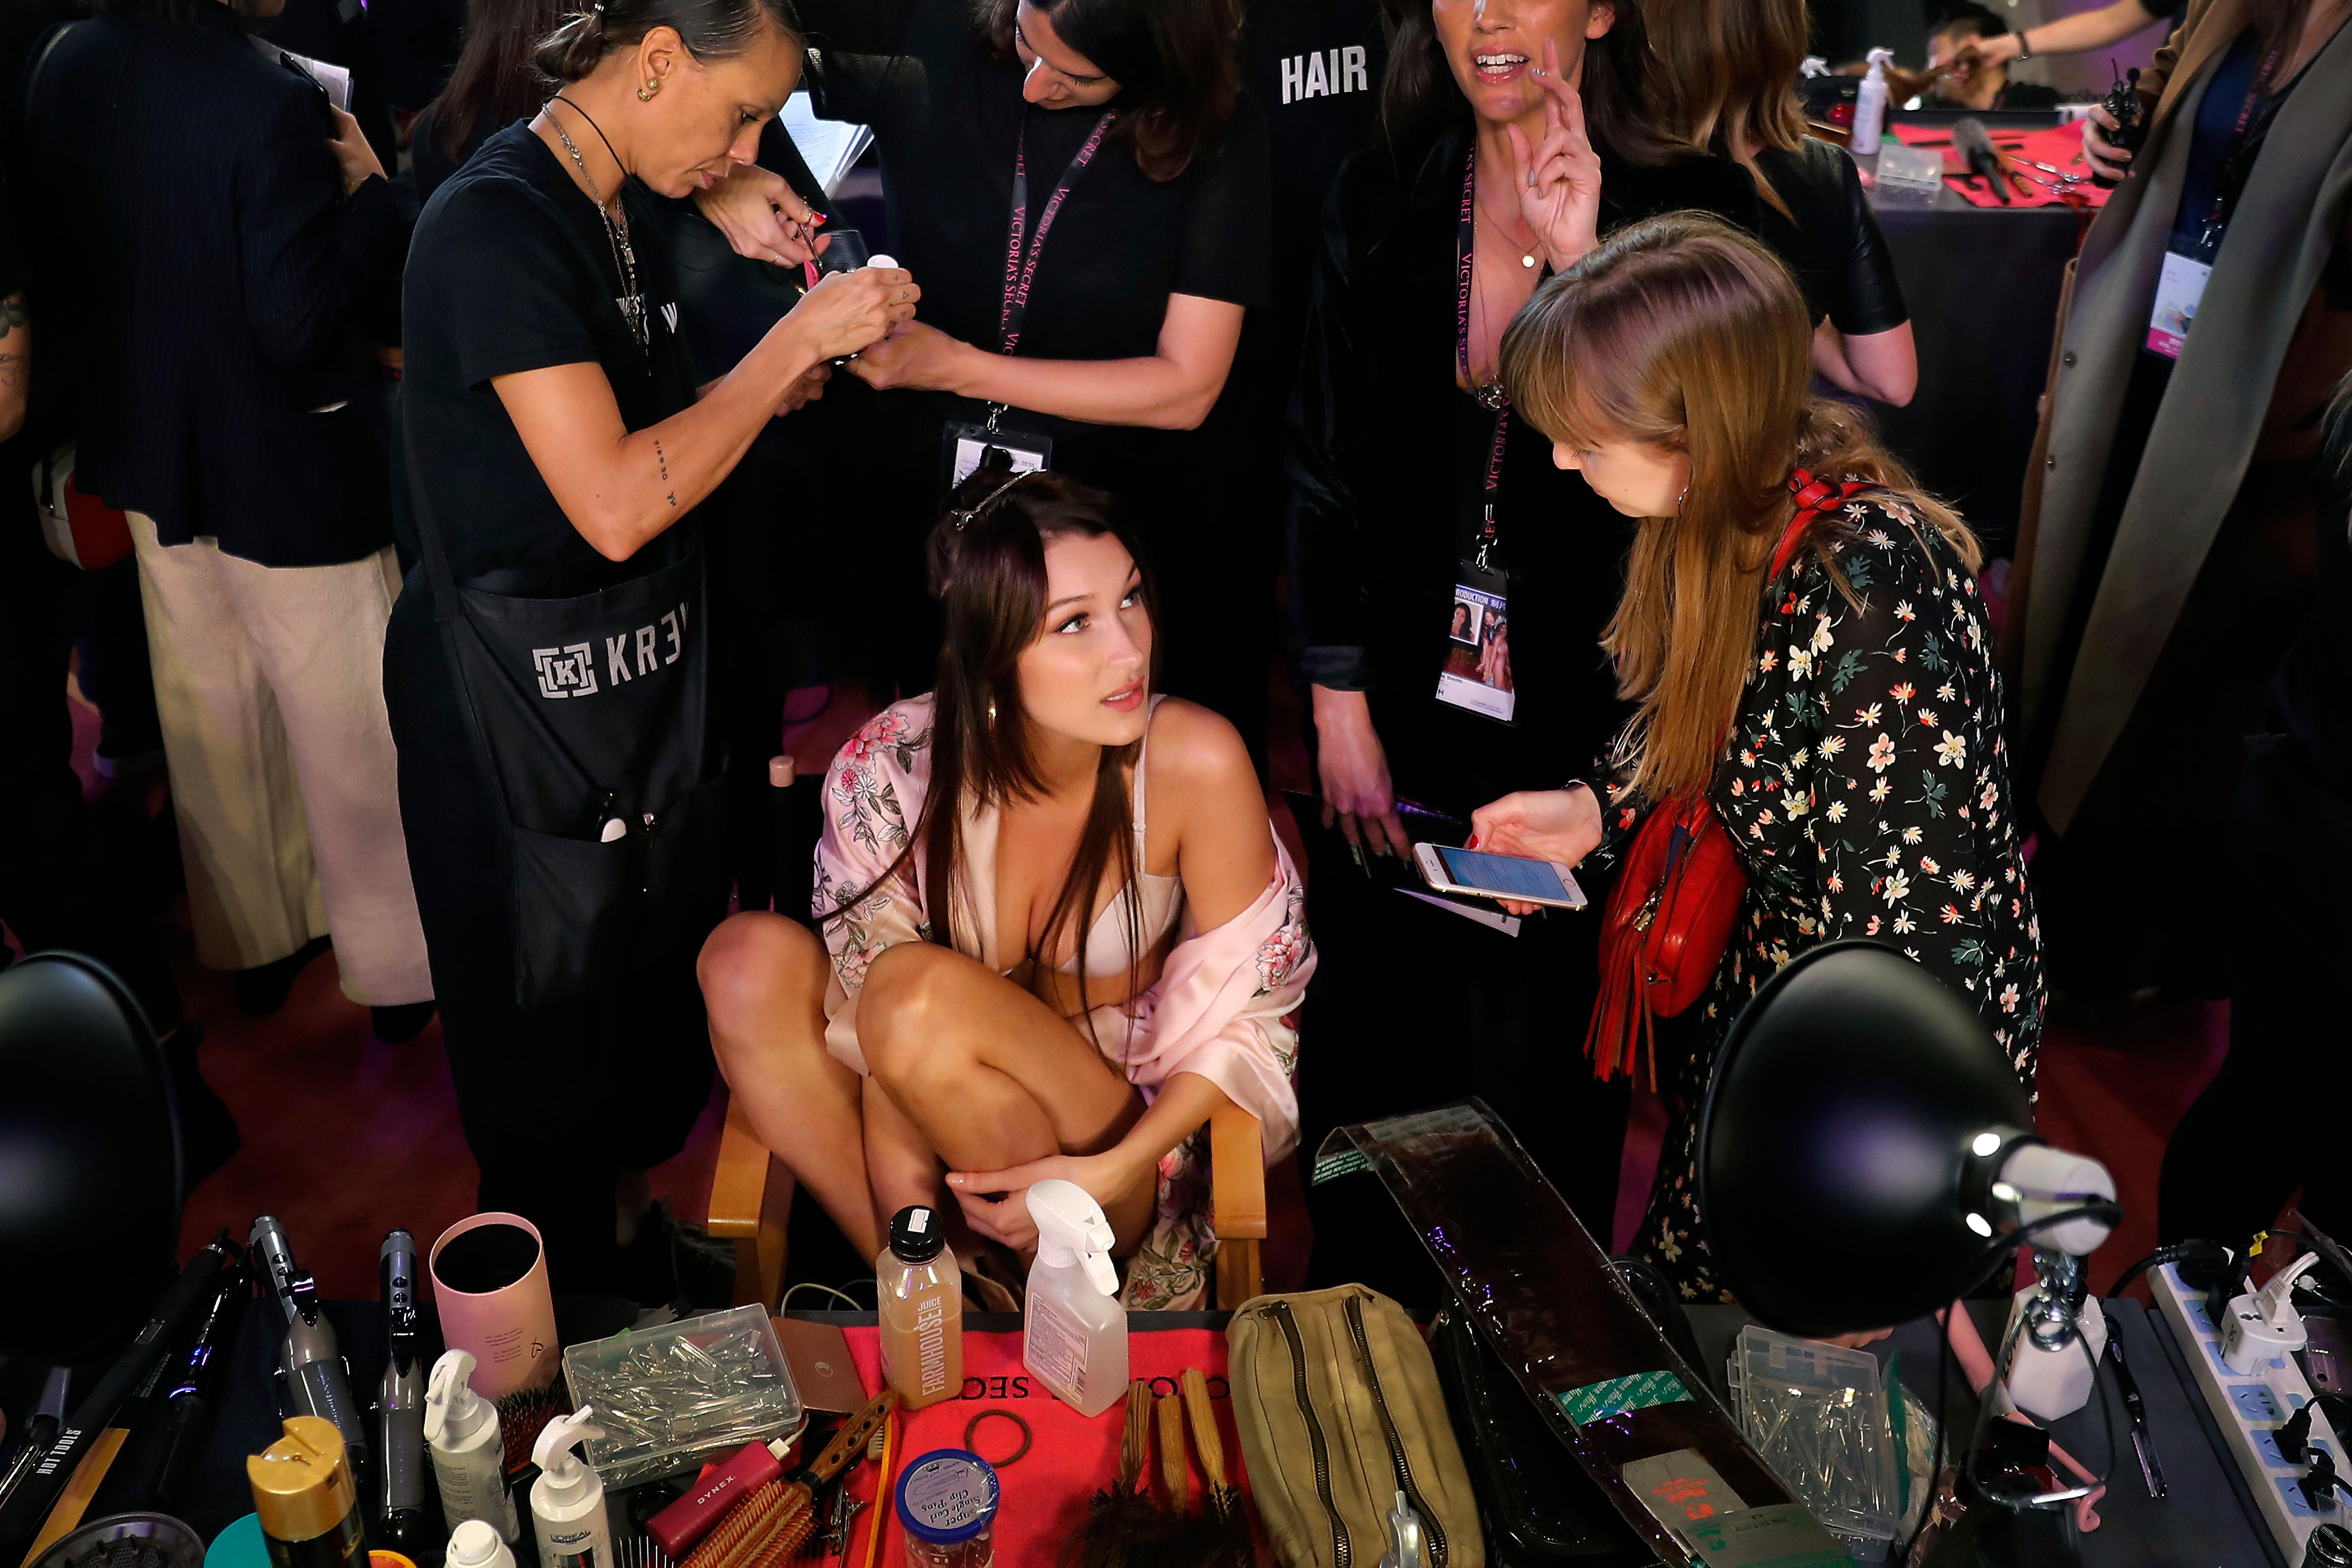 Model Bella Hadid of the United States talks to a woman as she is made up at backstage before the Victoria's Secret fashion show inside the Mercedes-Benz Arena in Shanghai, China, Monday, Nov. 20, 2017. The Victoria's Secret fashion show takes place in Shanghai on Monday with performances from Singer Harry Styles and R&B star Miguel. (AP Photo/Andy Wong)